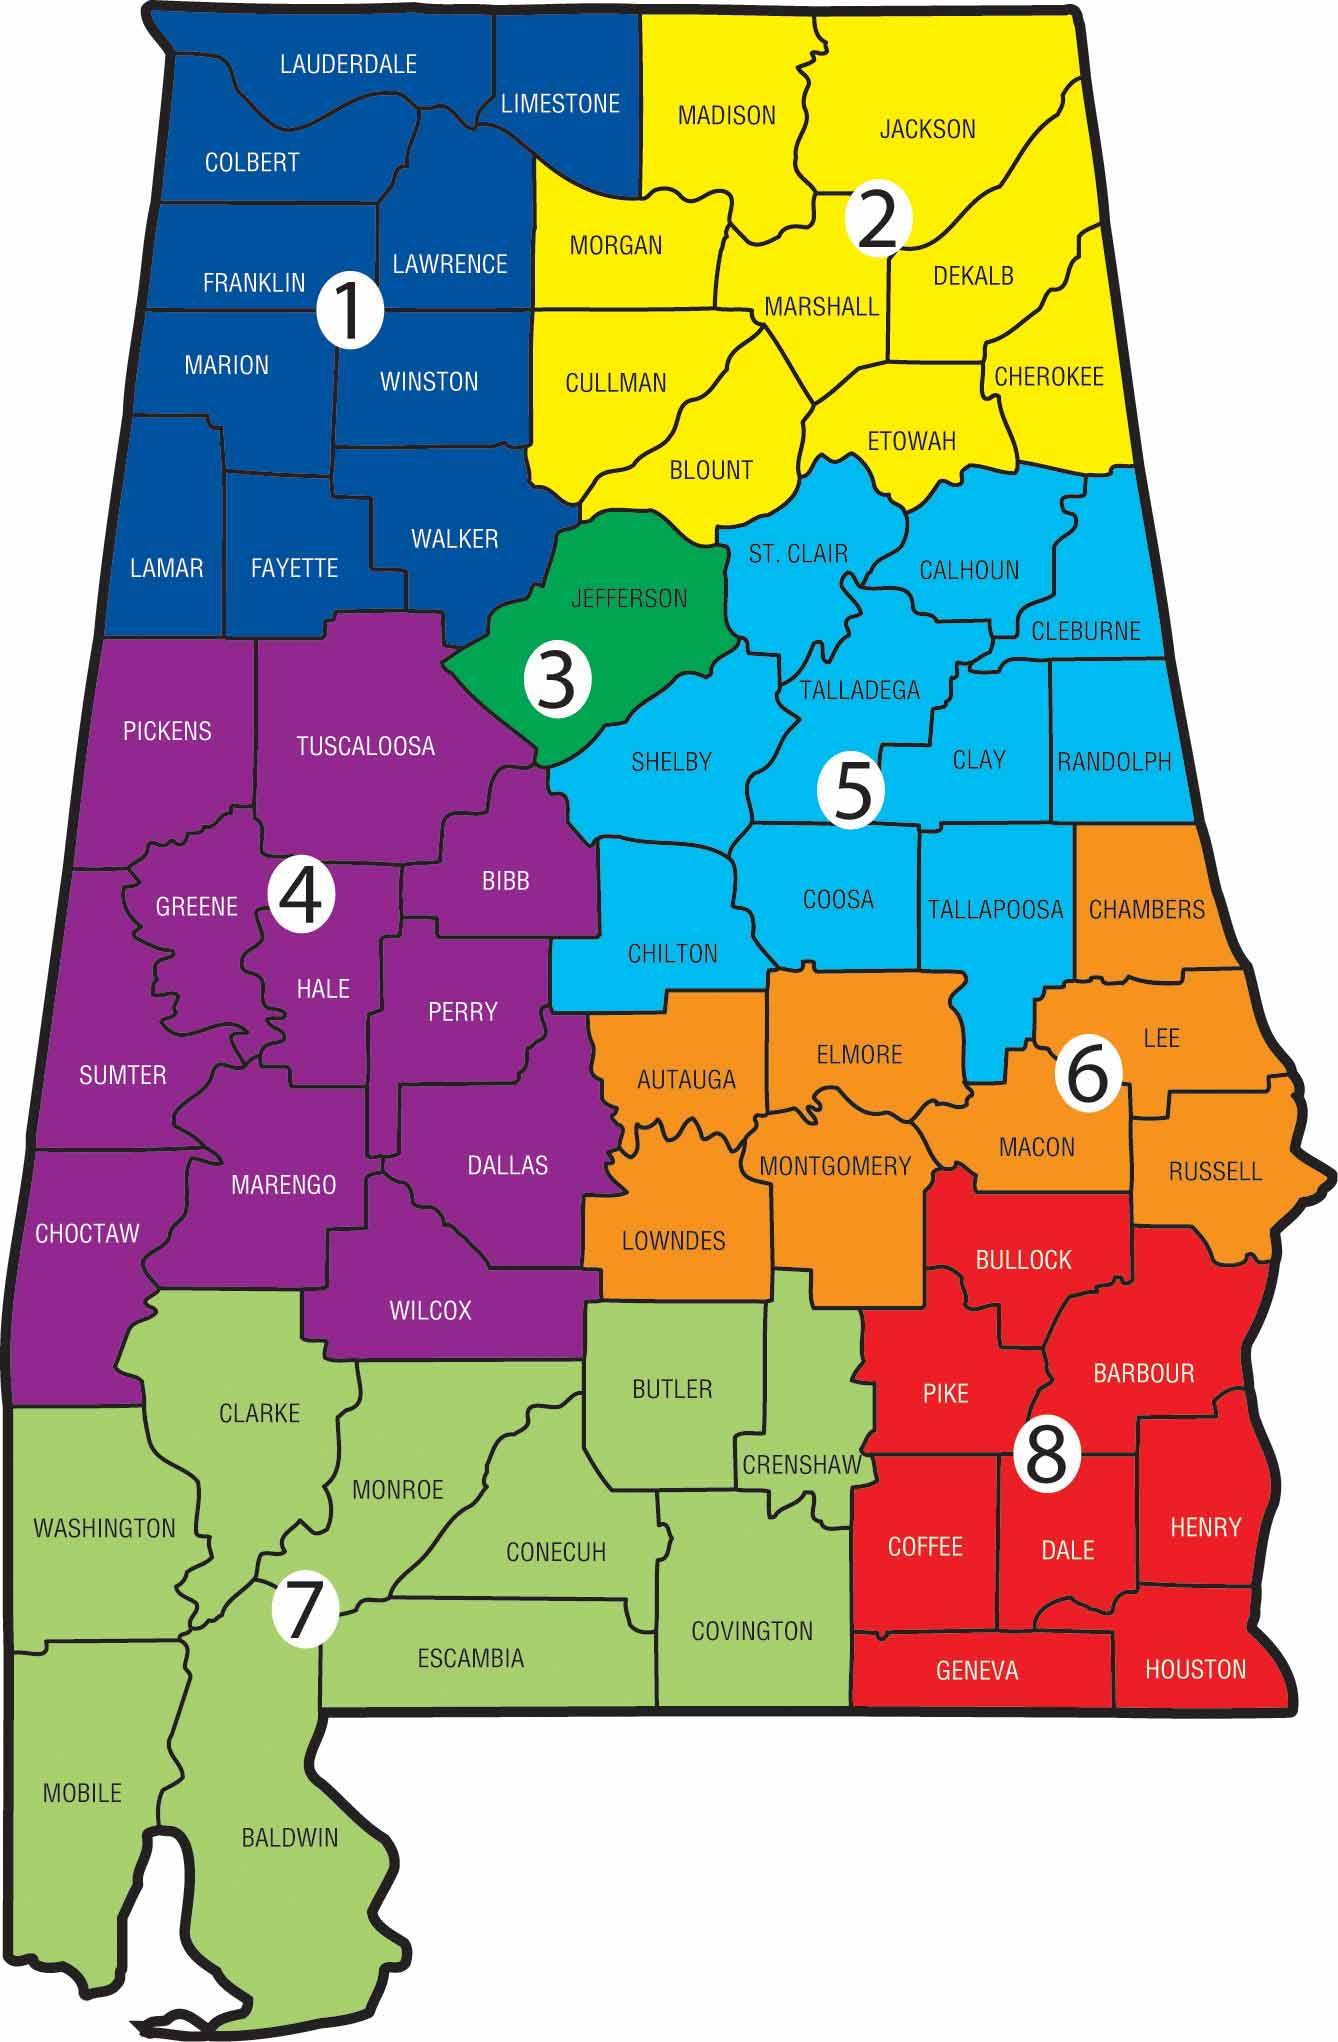 Alabama County School Districts